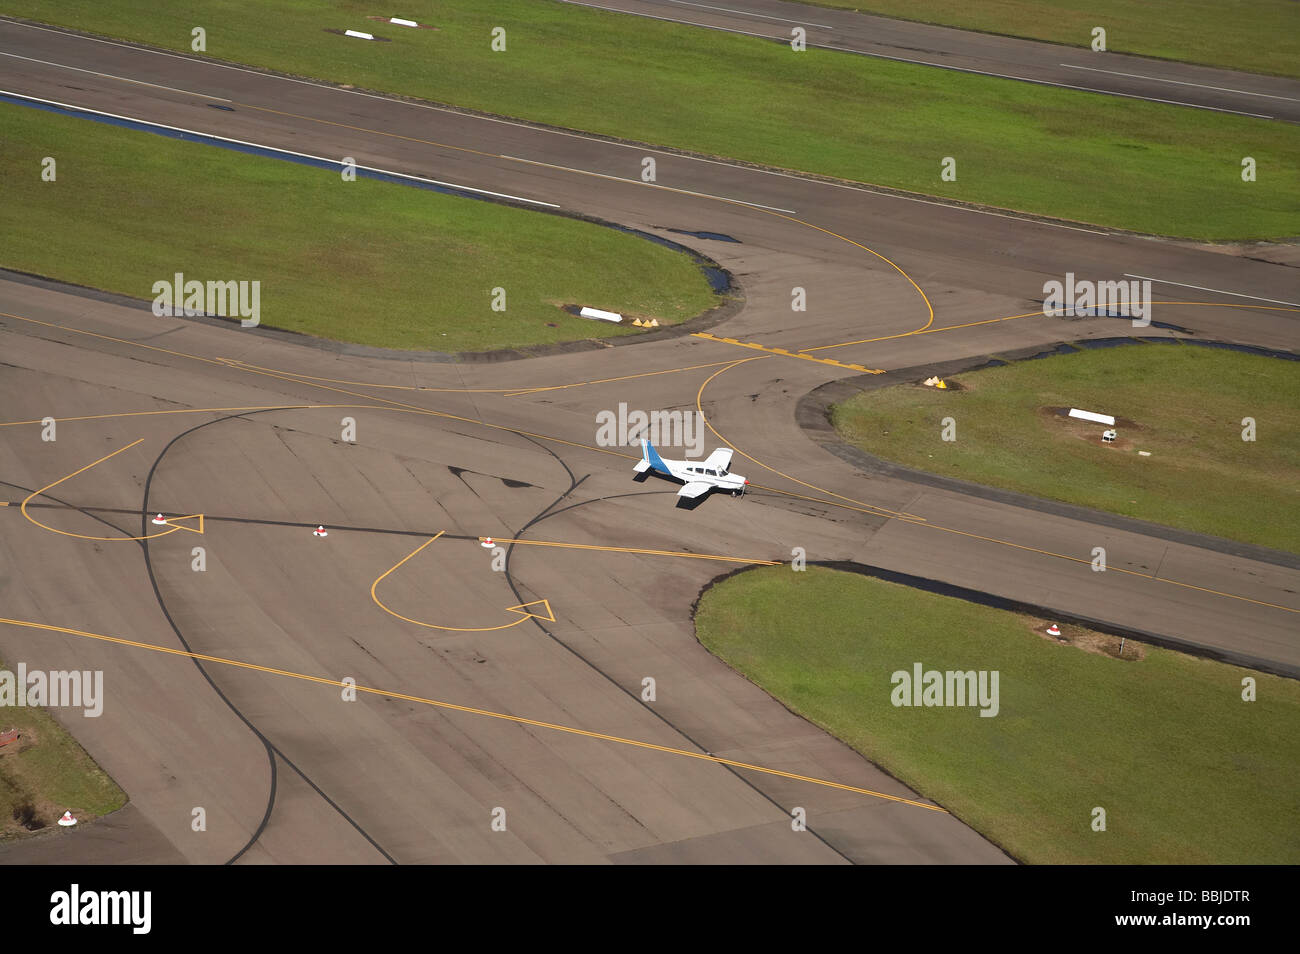 Light Plane on Runway Bankstown Airport Sydney New South Wales Australia aerial - Stock Image